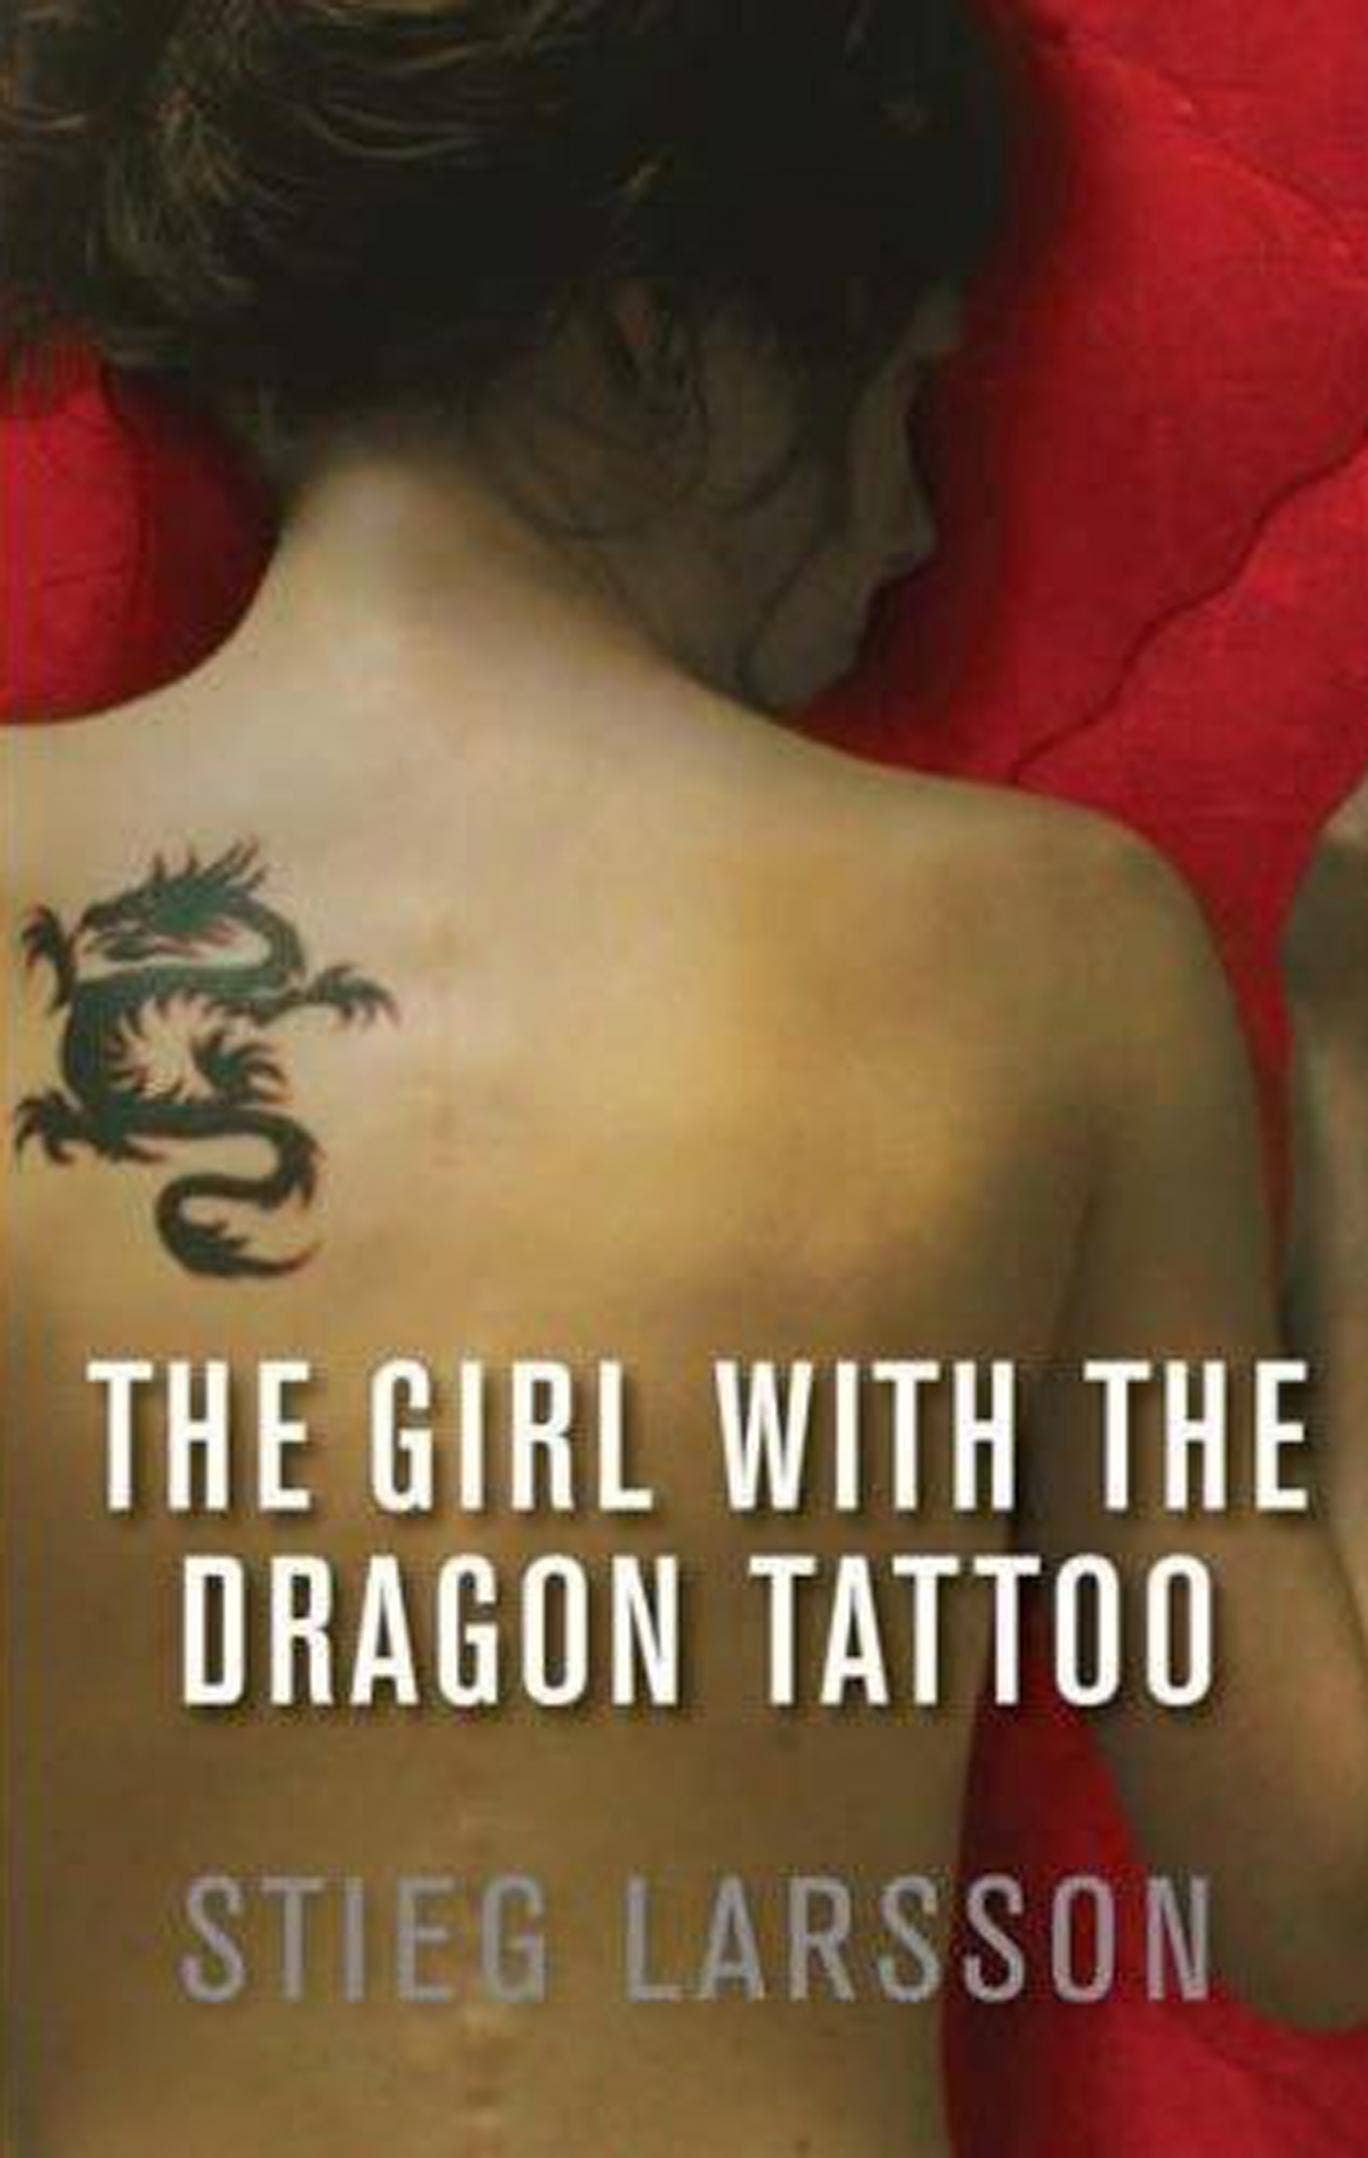 Stieg Larsson's 'The Girl With the Dragon Tattoo' was published in 2005